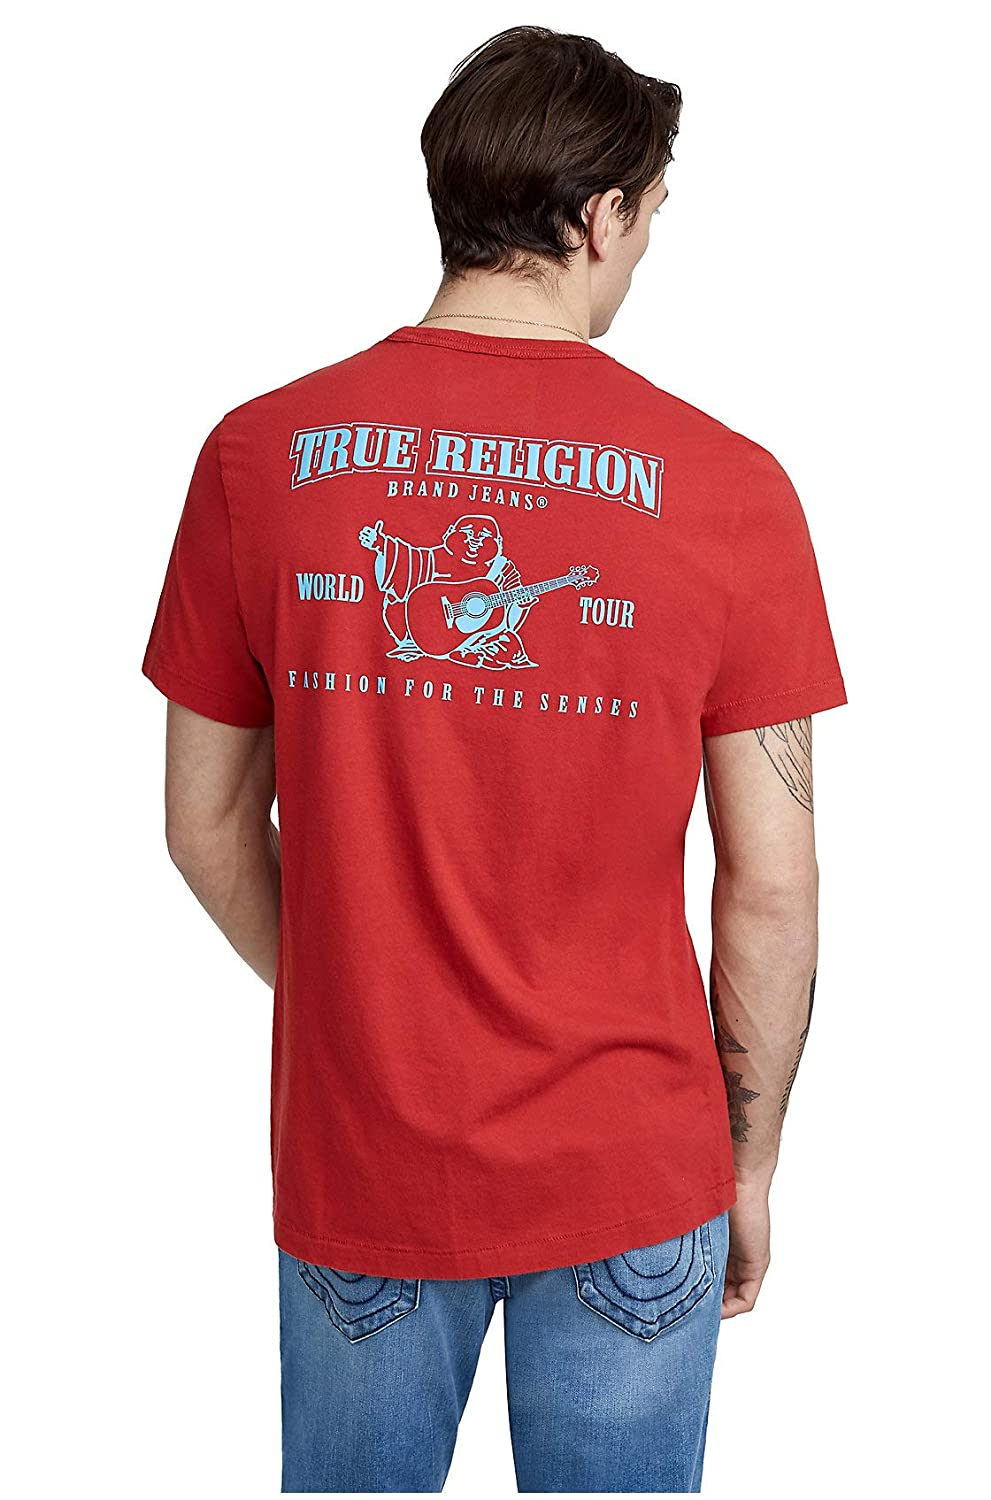 6a4e17497 Iconic True Religion Buddha logo featured in puff graphic. Pairs back to  your favorite pair of true denim